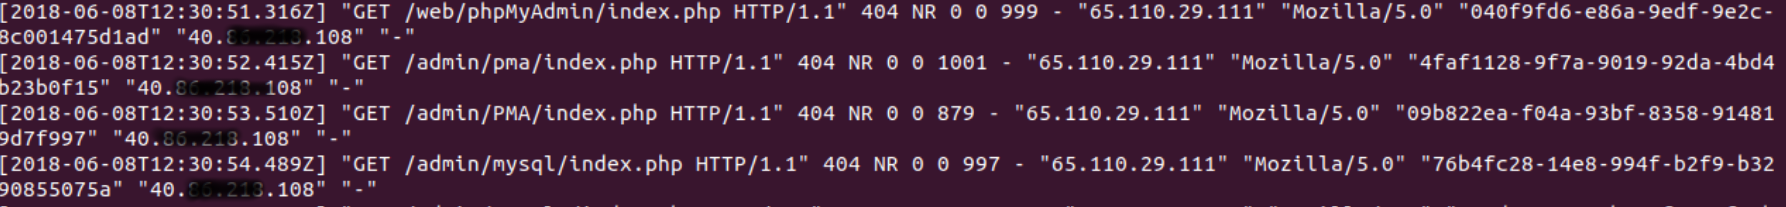 Moving into a new (cloud) neighbourhood? Check its reputation!